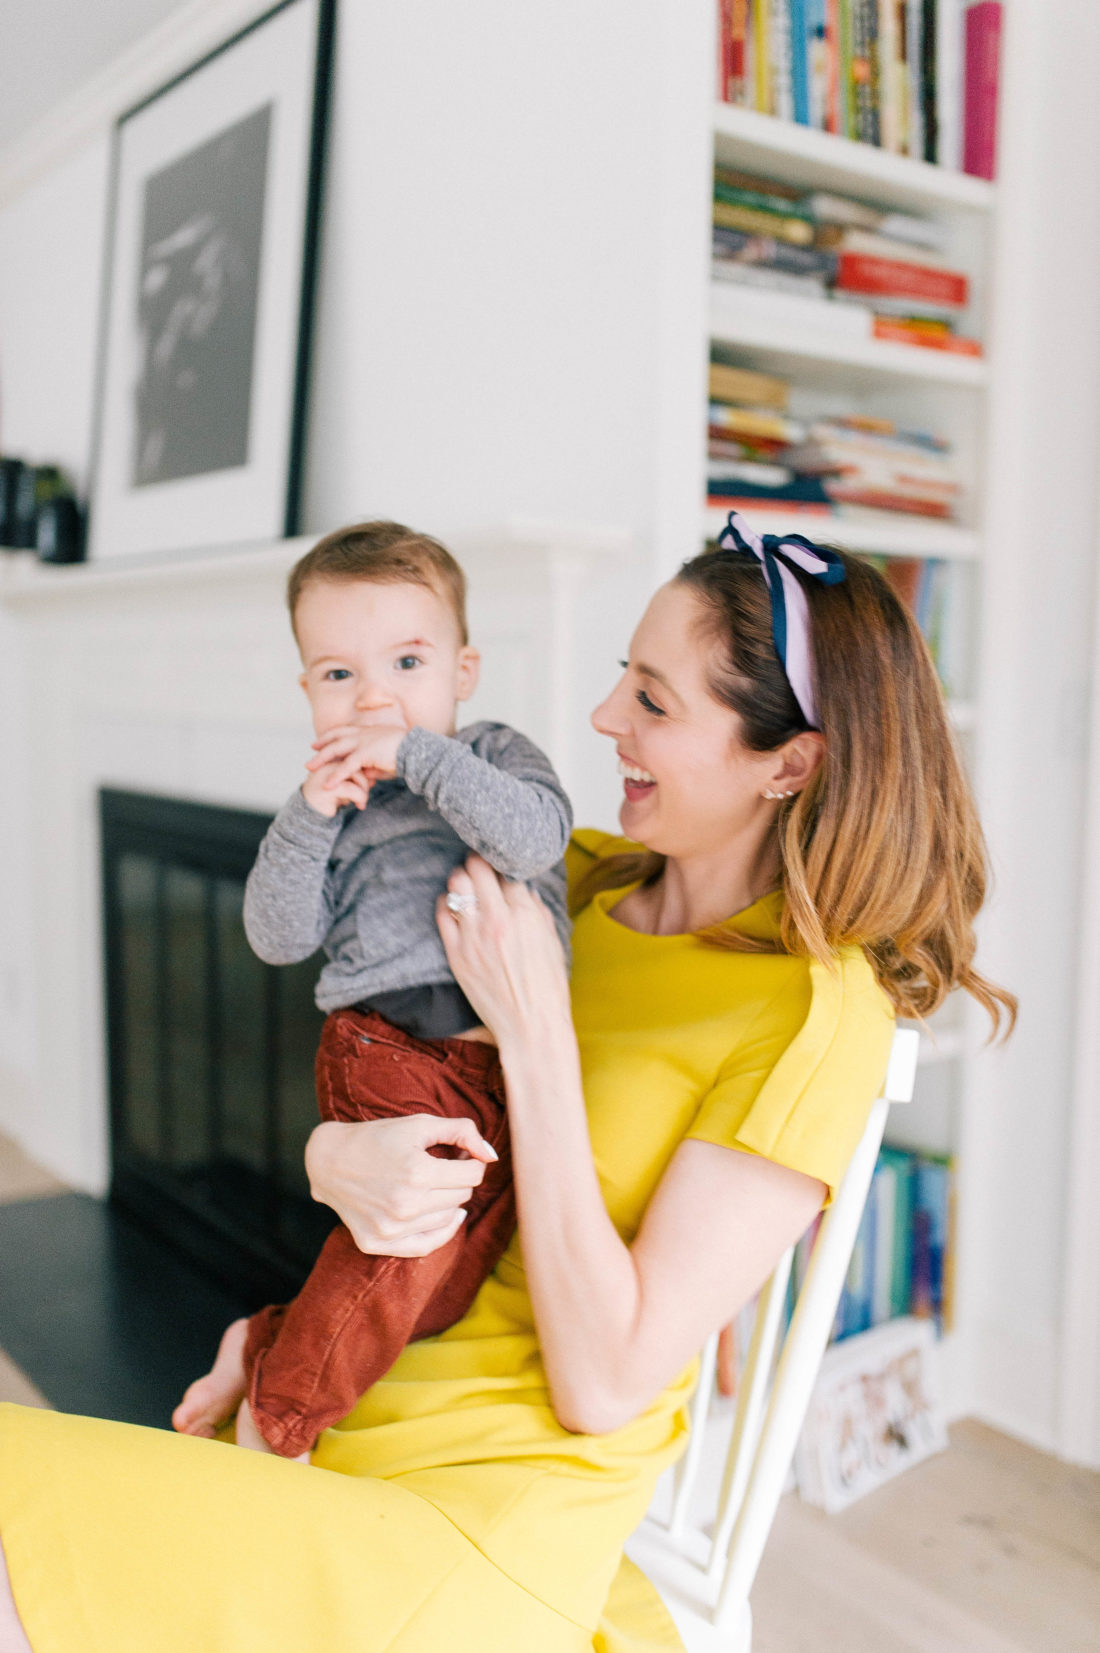 Eva Amurri Martino holds one year old son Major Martino in the kitchen of her Connecticut home